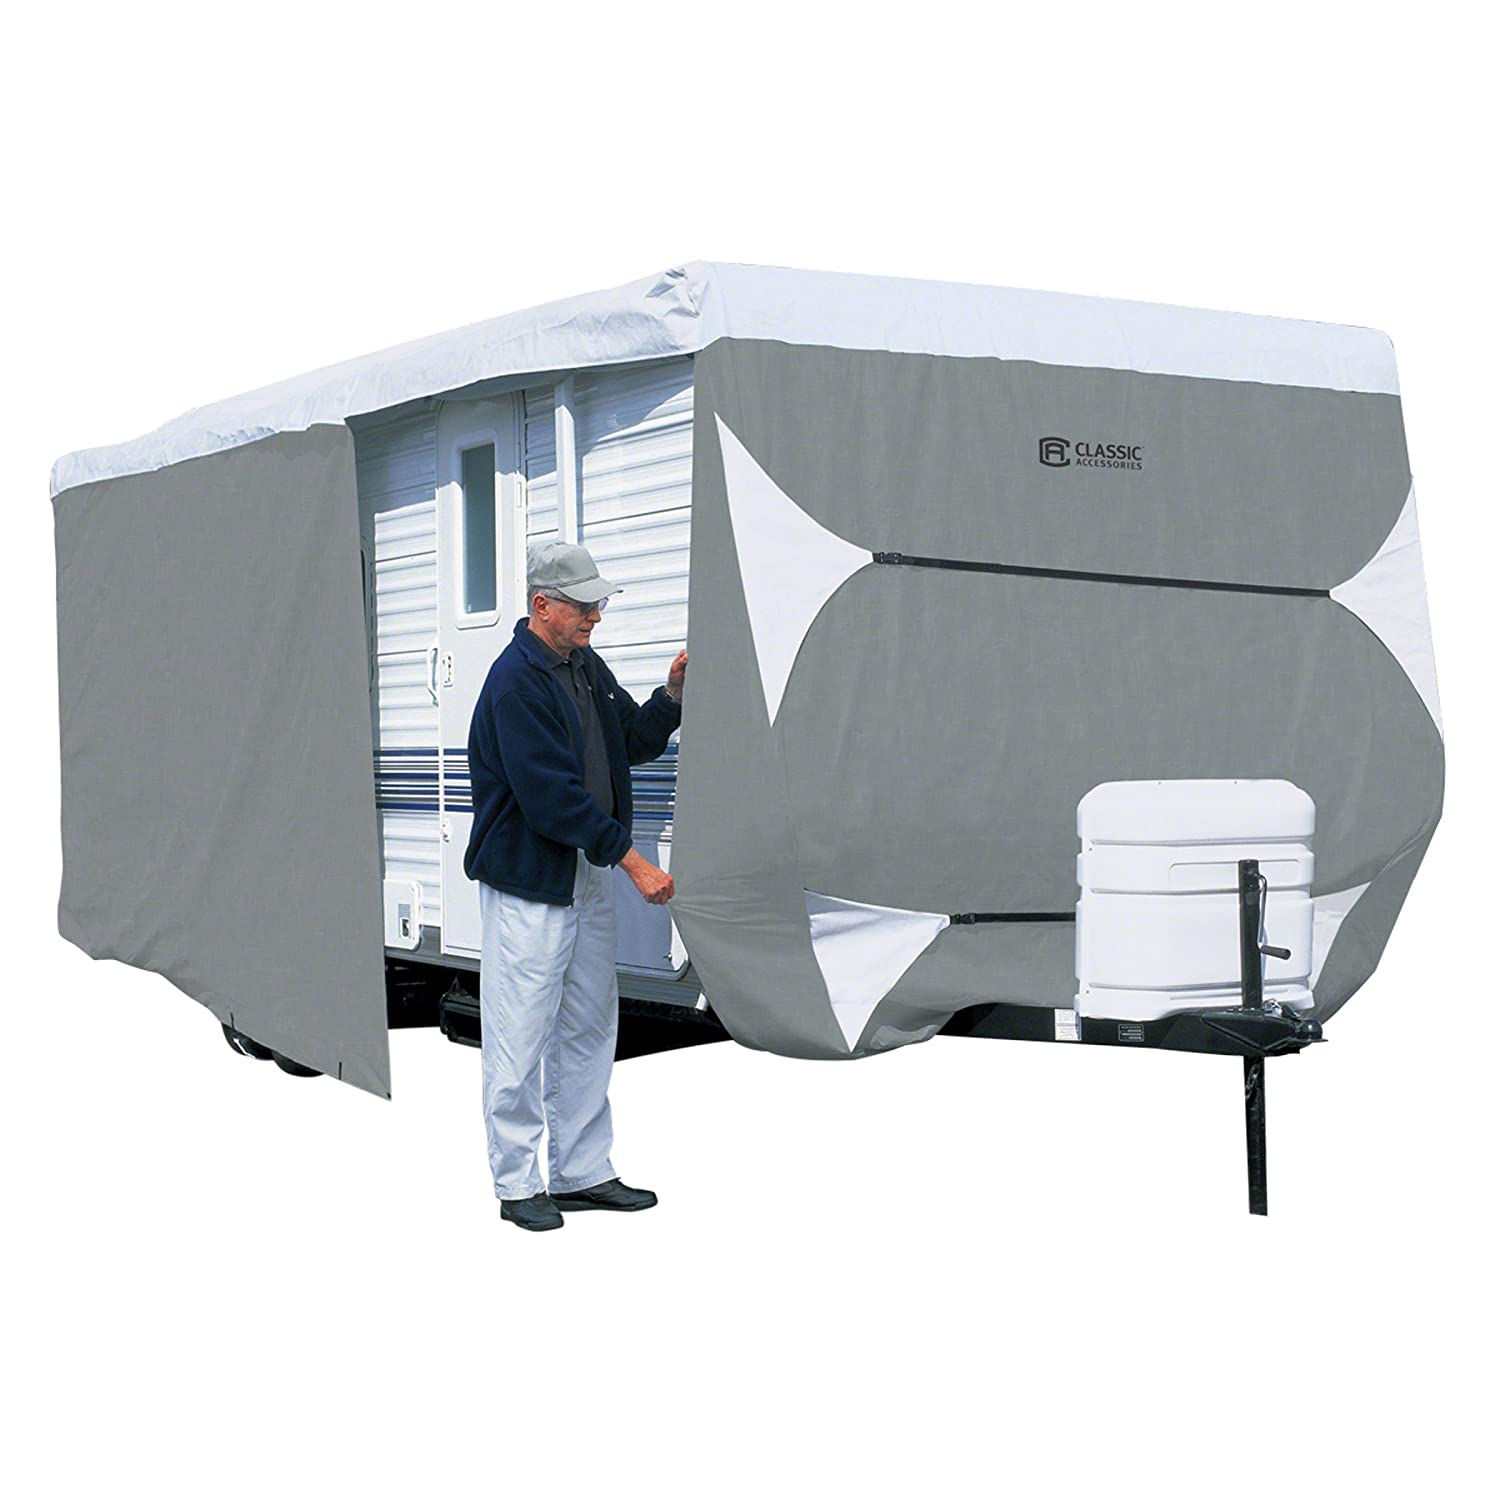 Classic Accessories OverDrive PolyPRO 3 Deluxe Travel Trailer Cover or Toy Hauler Cover, Fits 27